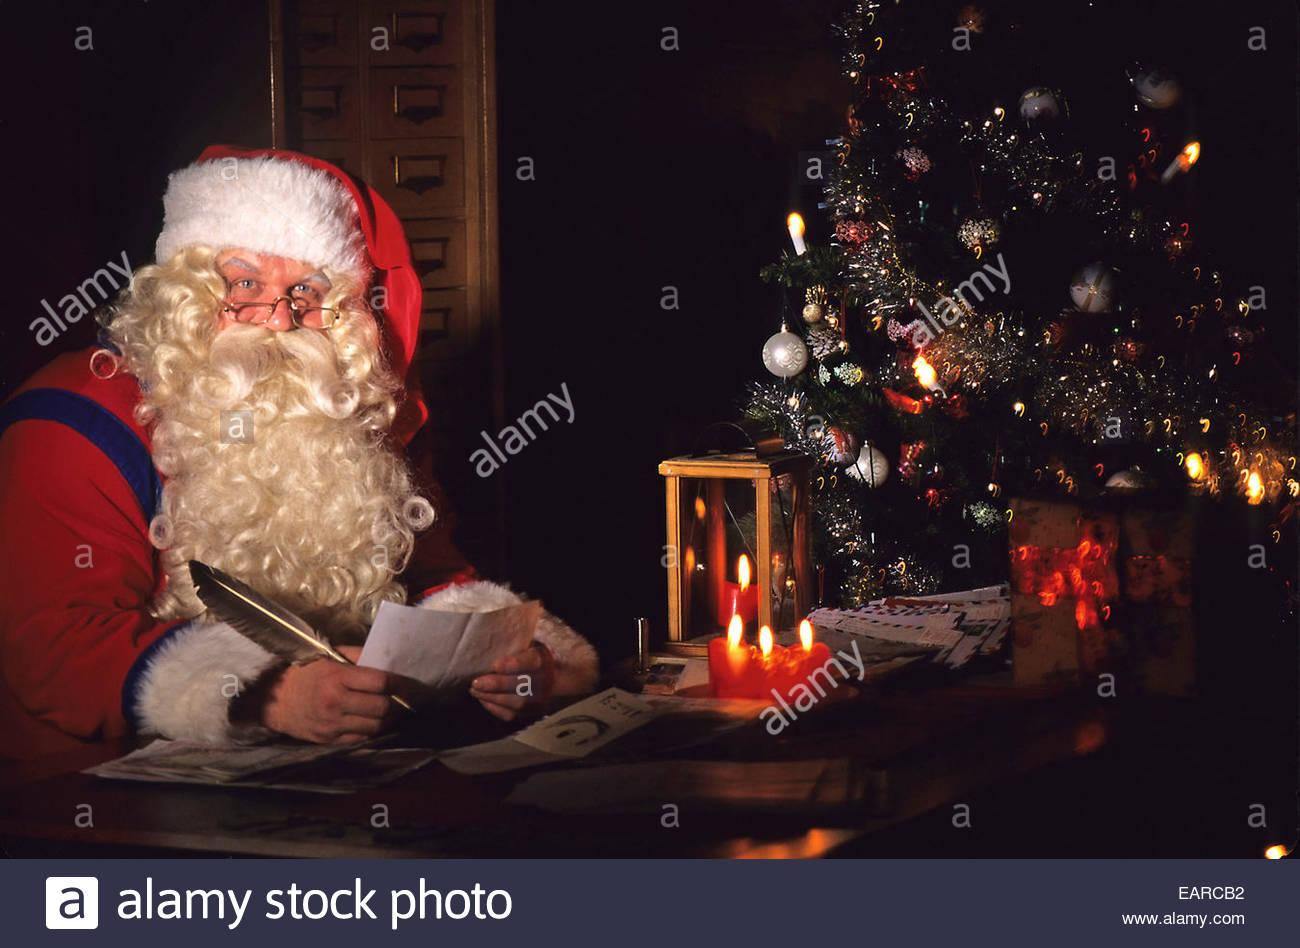 Santa Claus reading a letter, Rovaniemi, Finland. - Stock Image